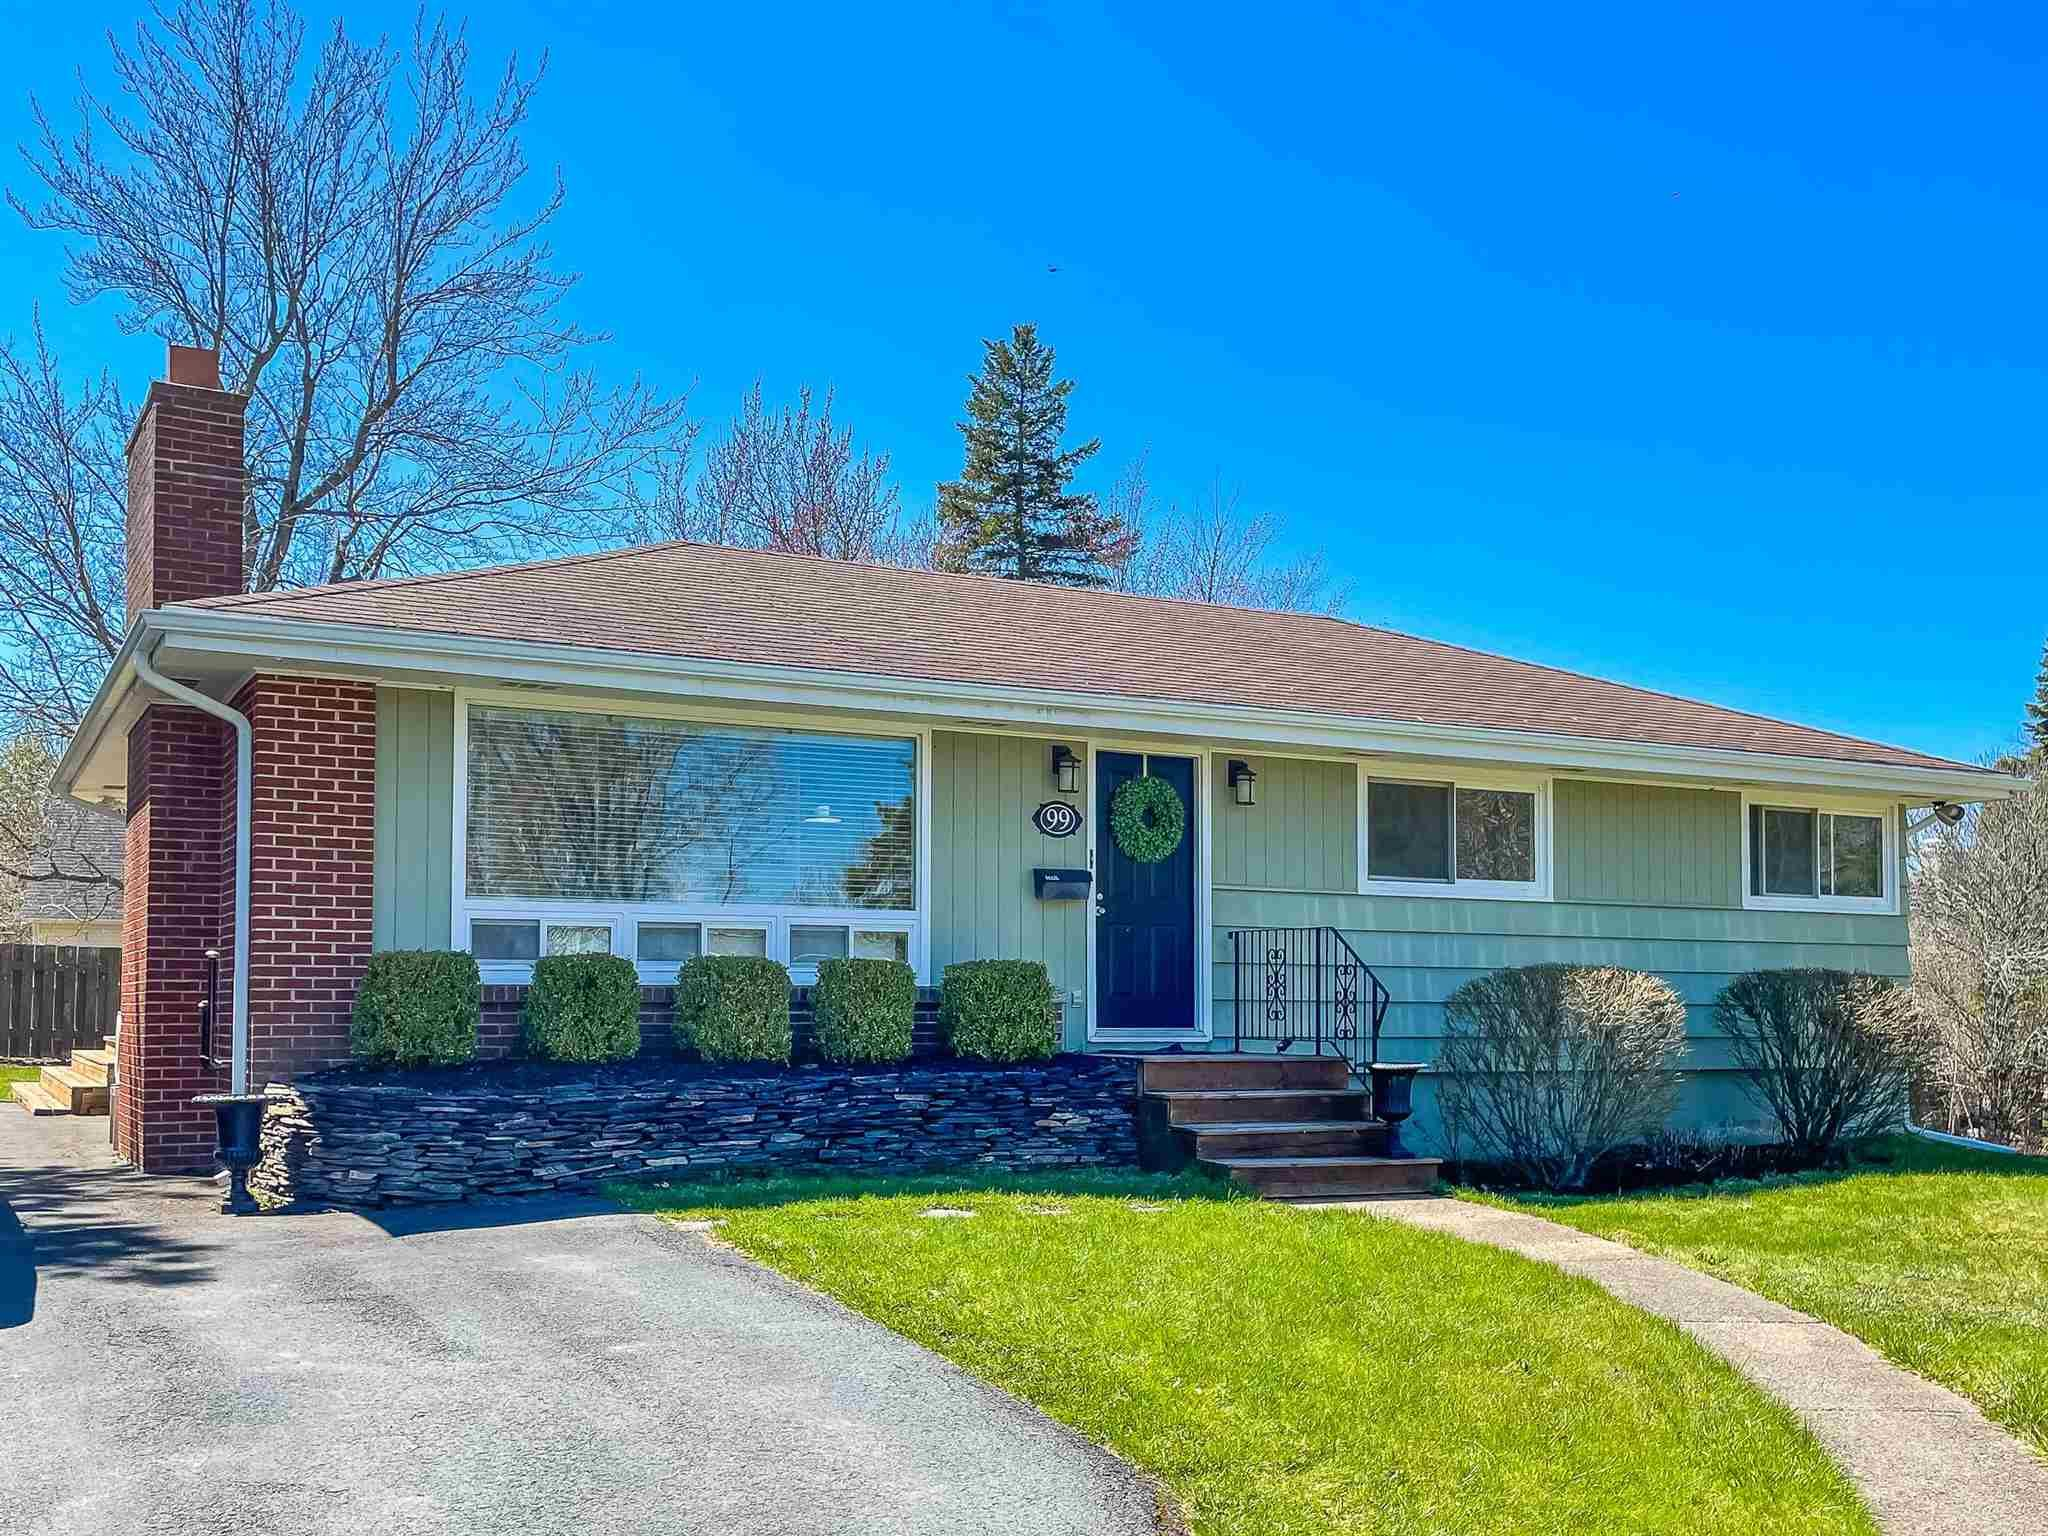 Main Photo: 99 Palmeter Avenue in Kentville: 404-Kings County Residential for sale (Annapolis Valley)  : MLS®# 202110422